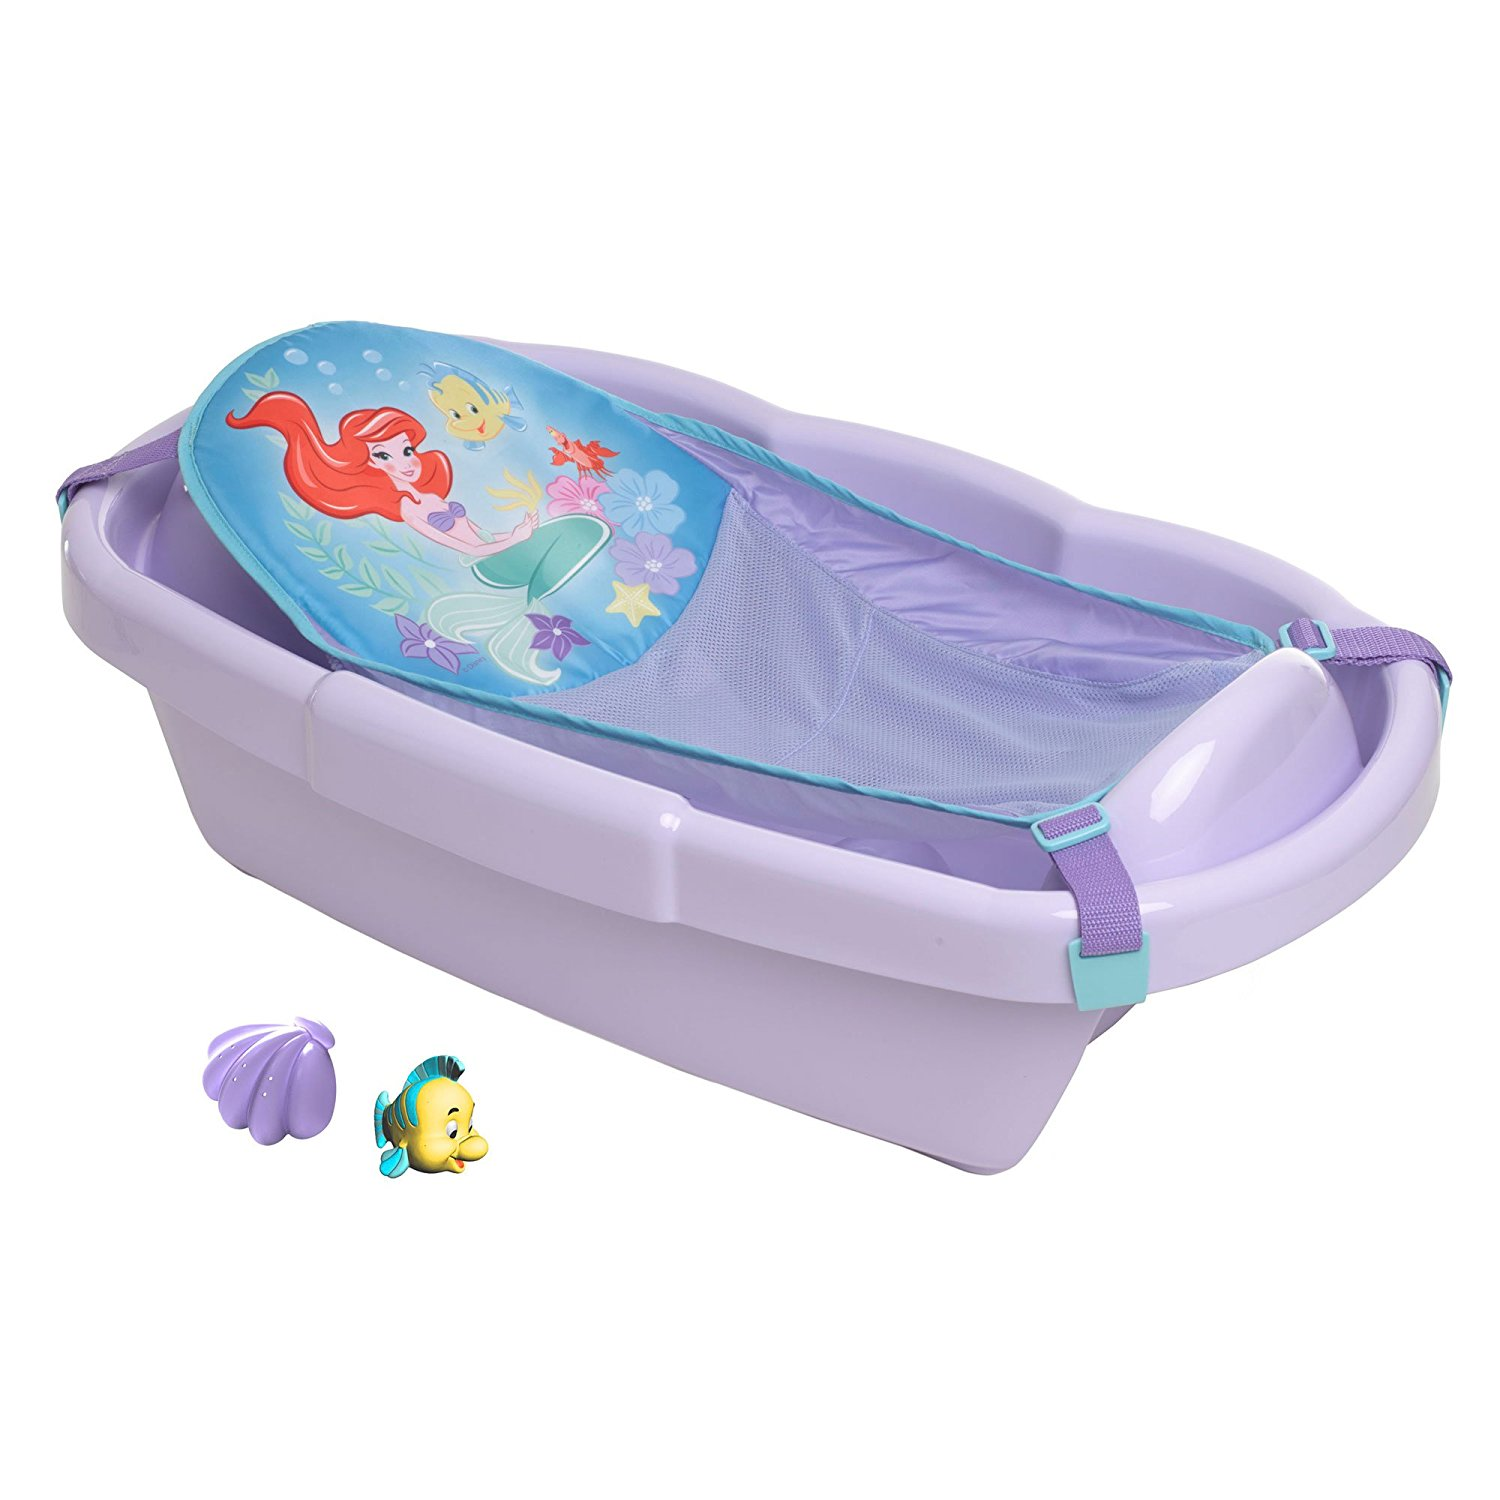 Disney Baby Newborn to Toddler Tub, Ariel, Three- stage tub includes ...